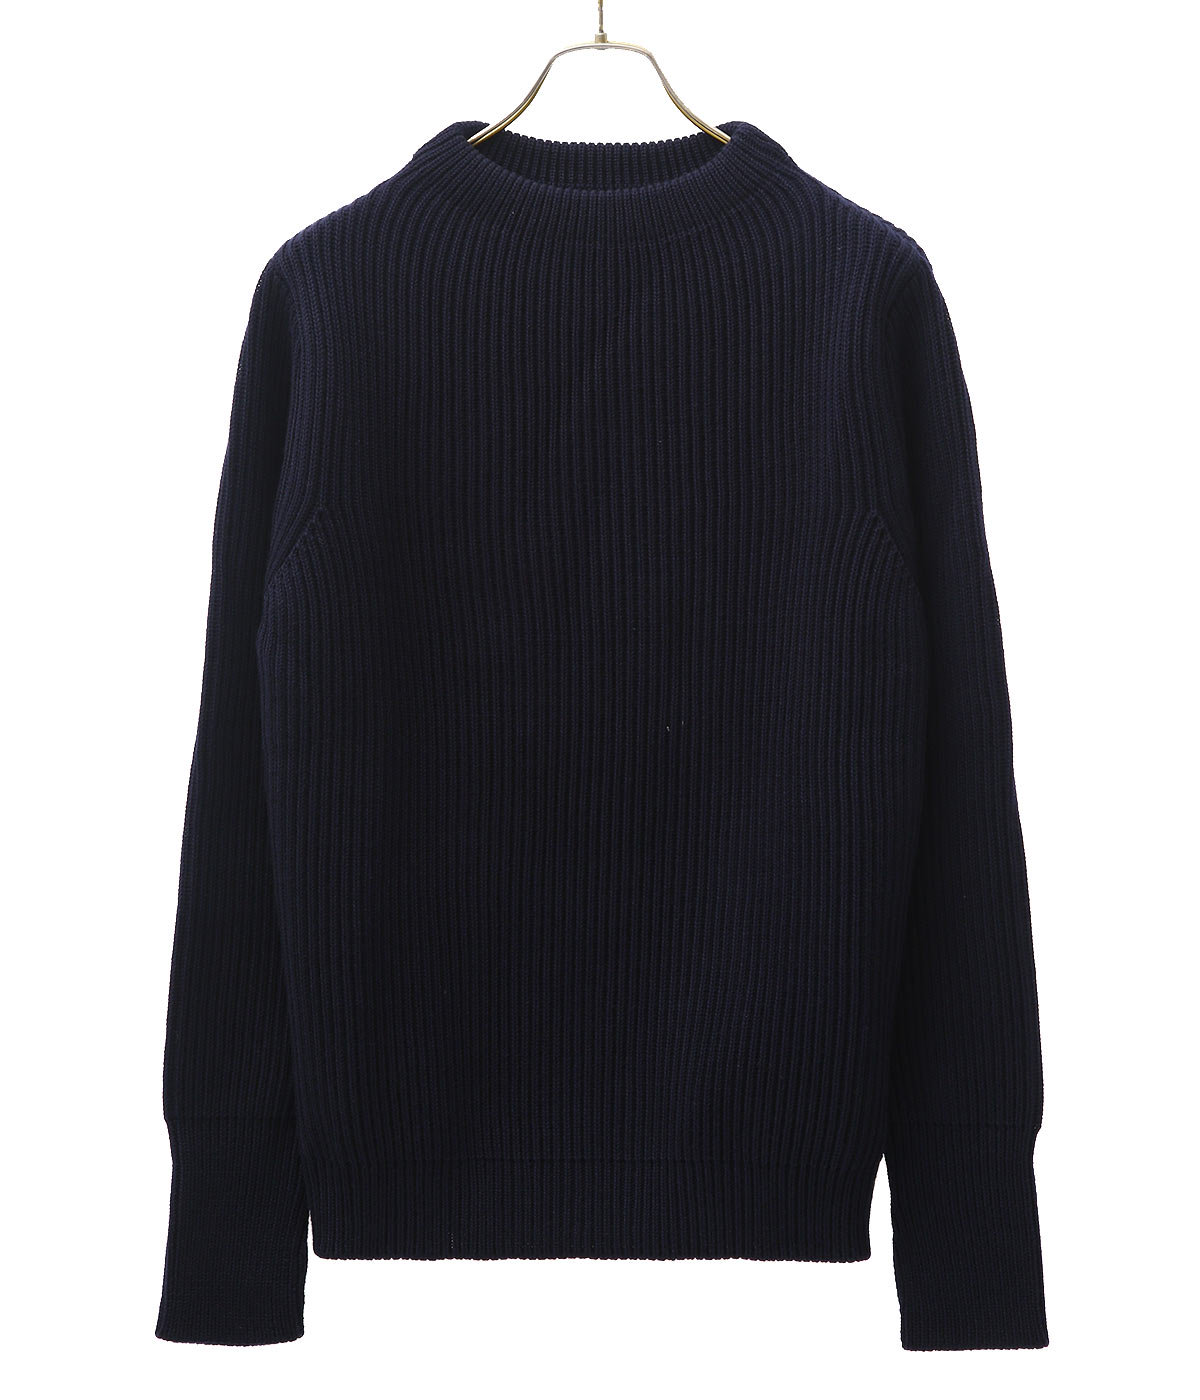 THE NAVY - CREWNECK / ネイビー